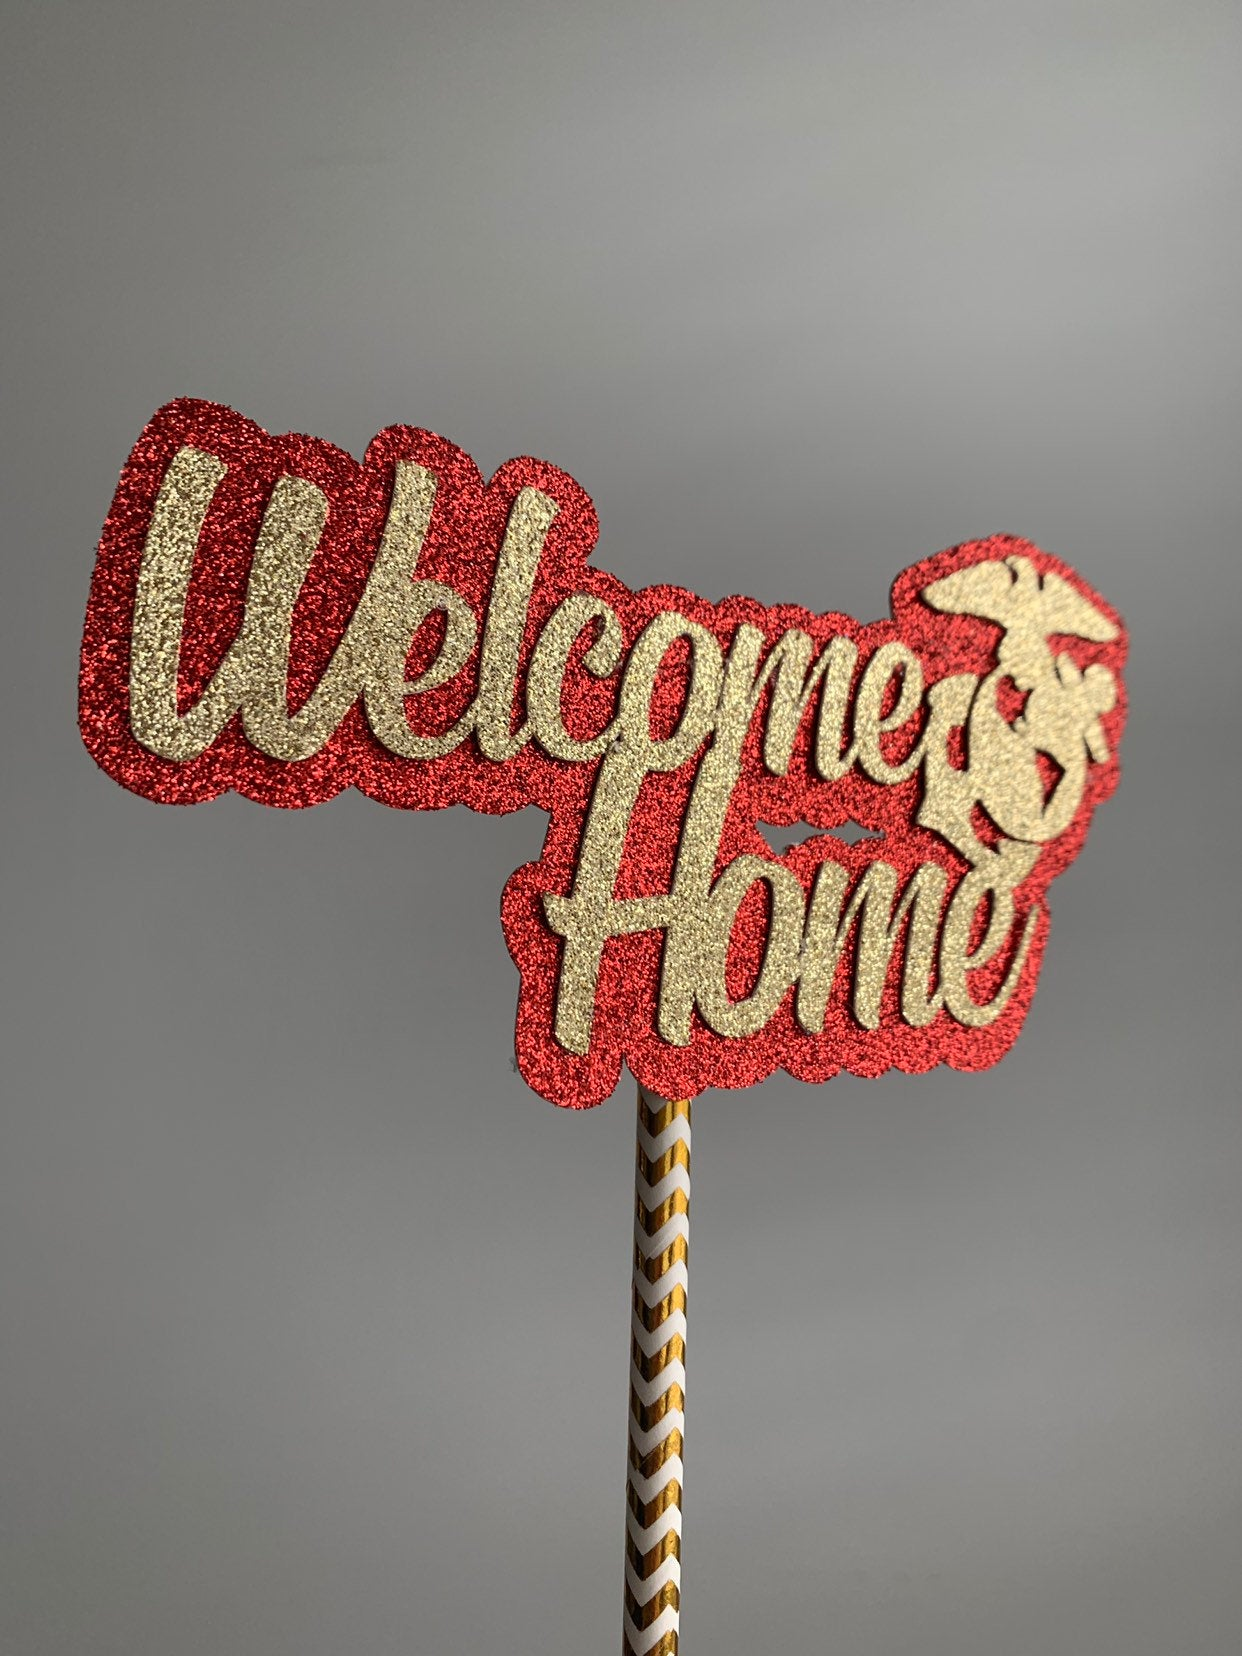 USMC Welcome Home Cake Topper. Marine Corp Welcome Home Centerpiece. Marine Welcome Home USMC Centerpiece